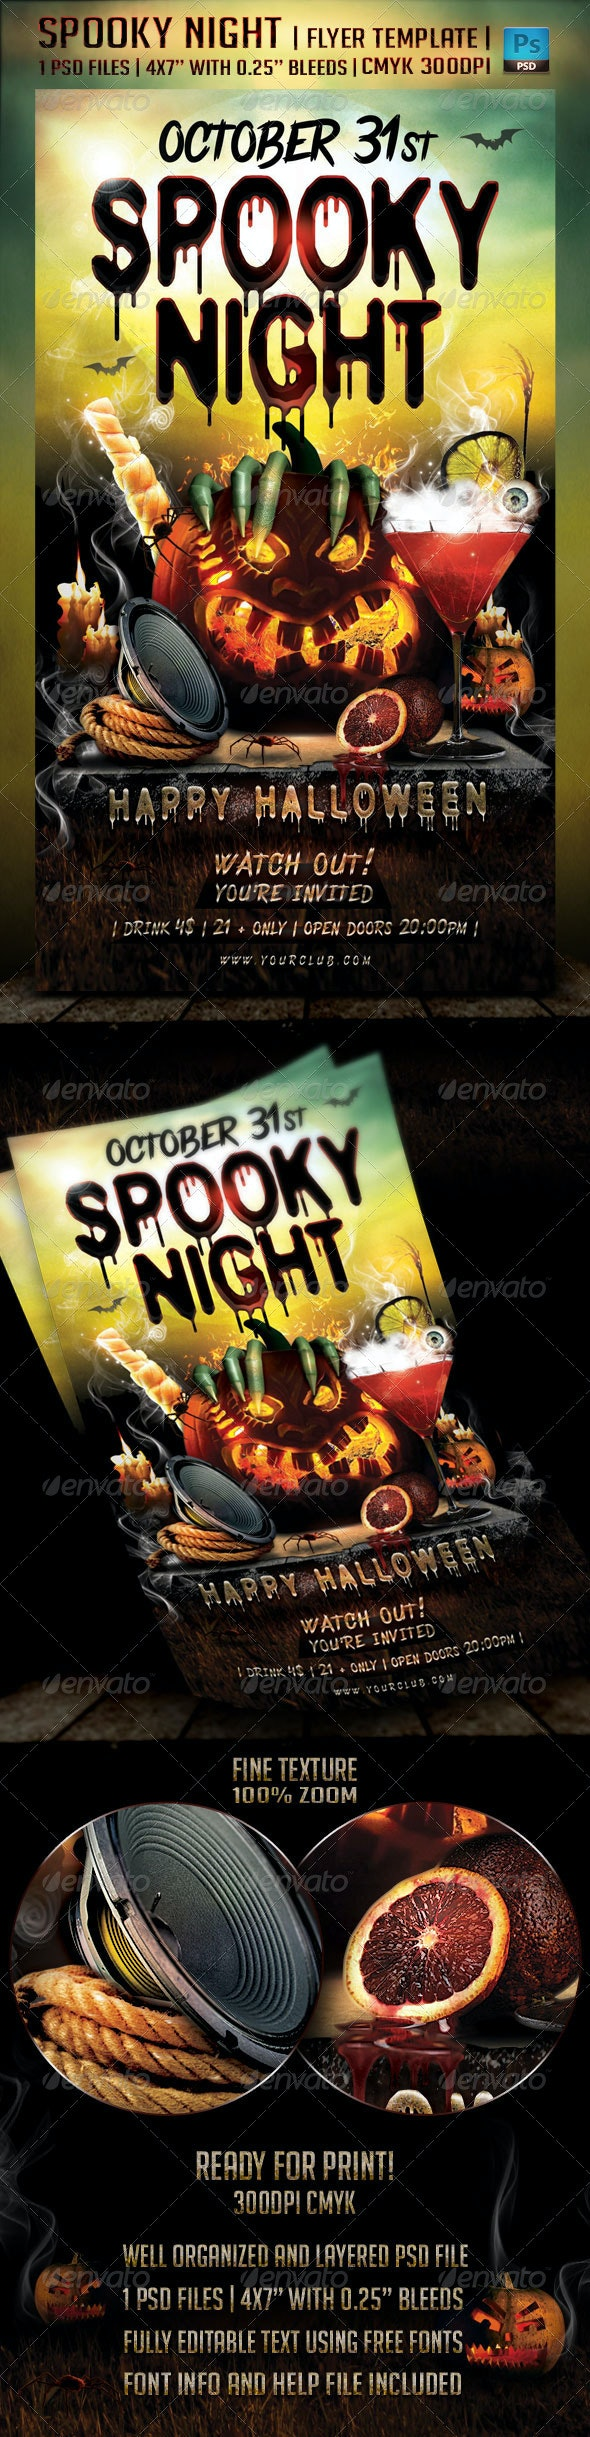 Spooky Night Flyer Template - Holidays Events